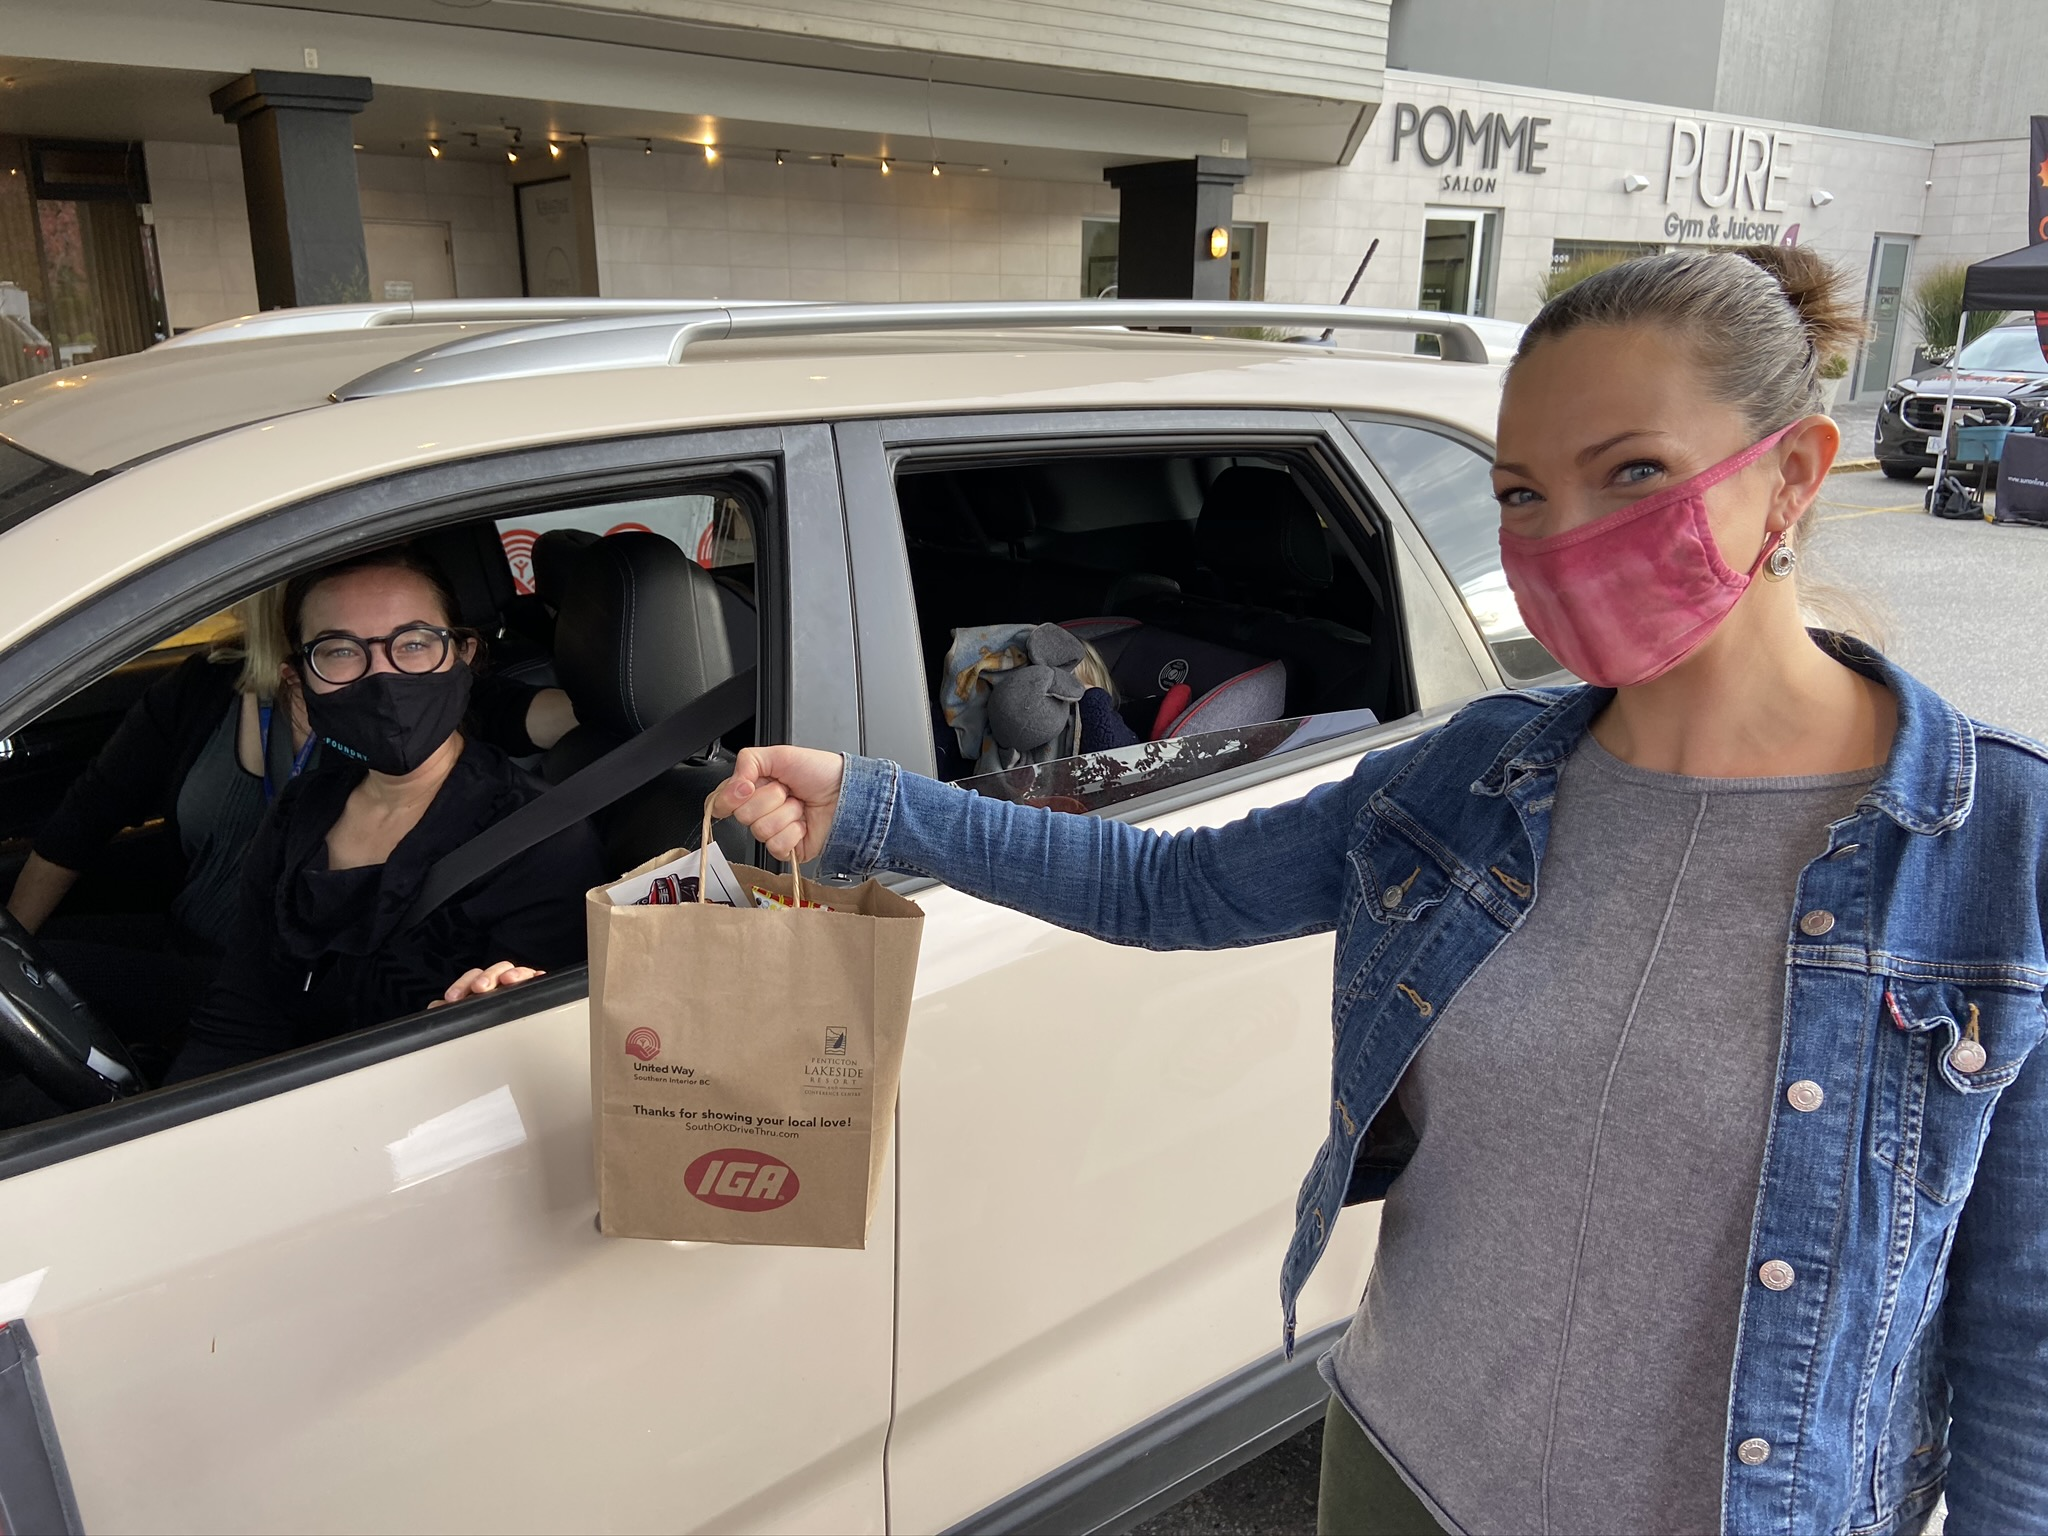 A volunteer hands a paper bag to someone sitting in a car.